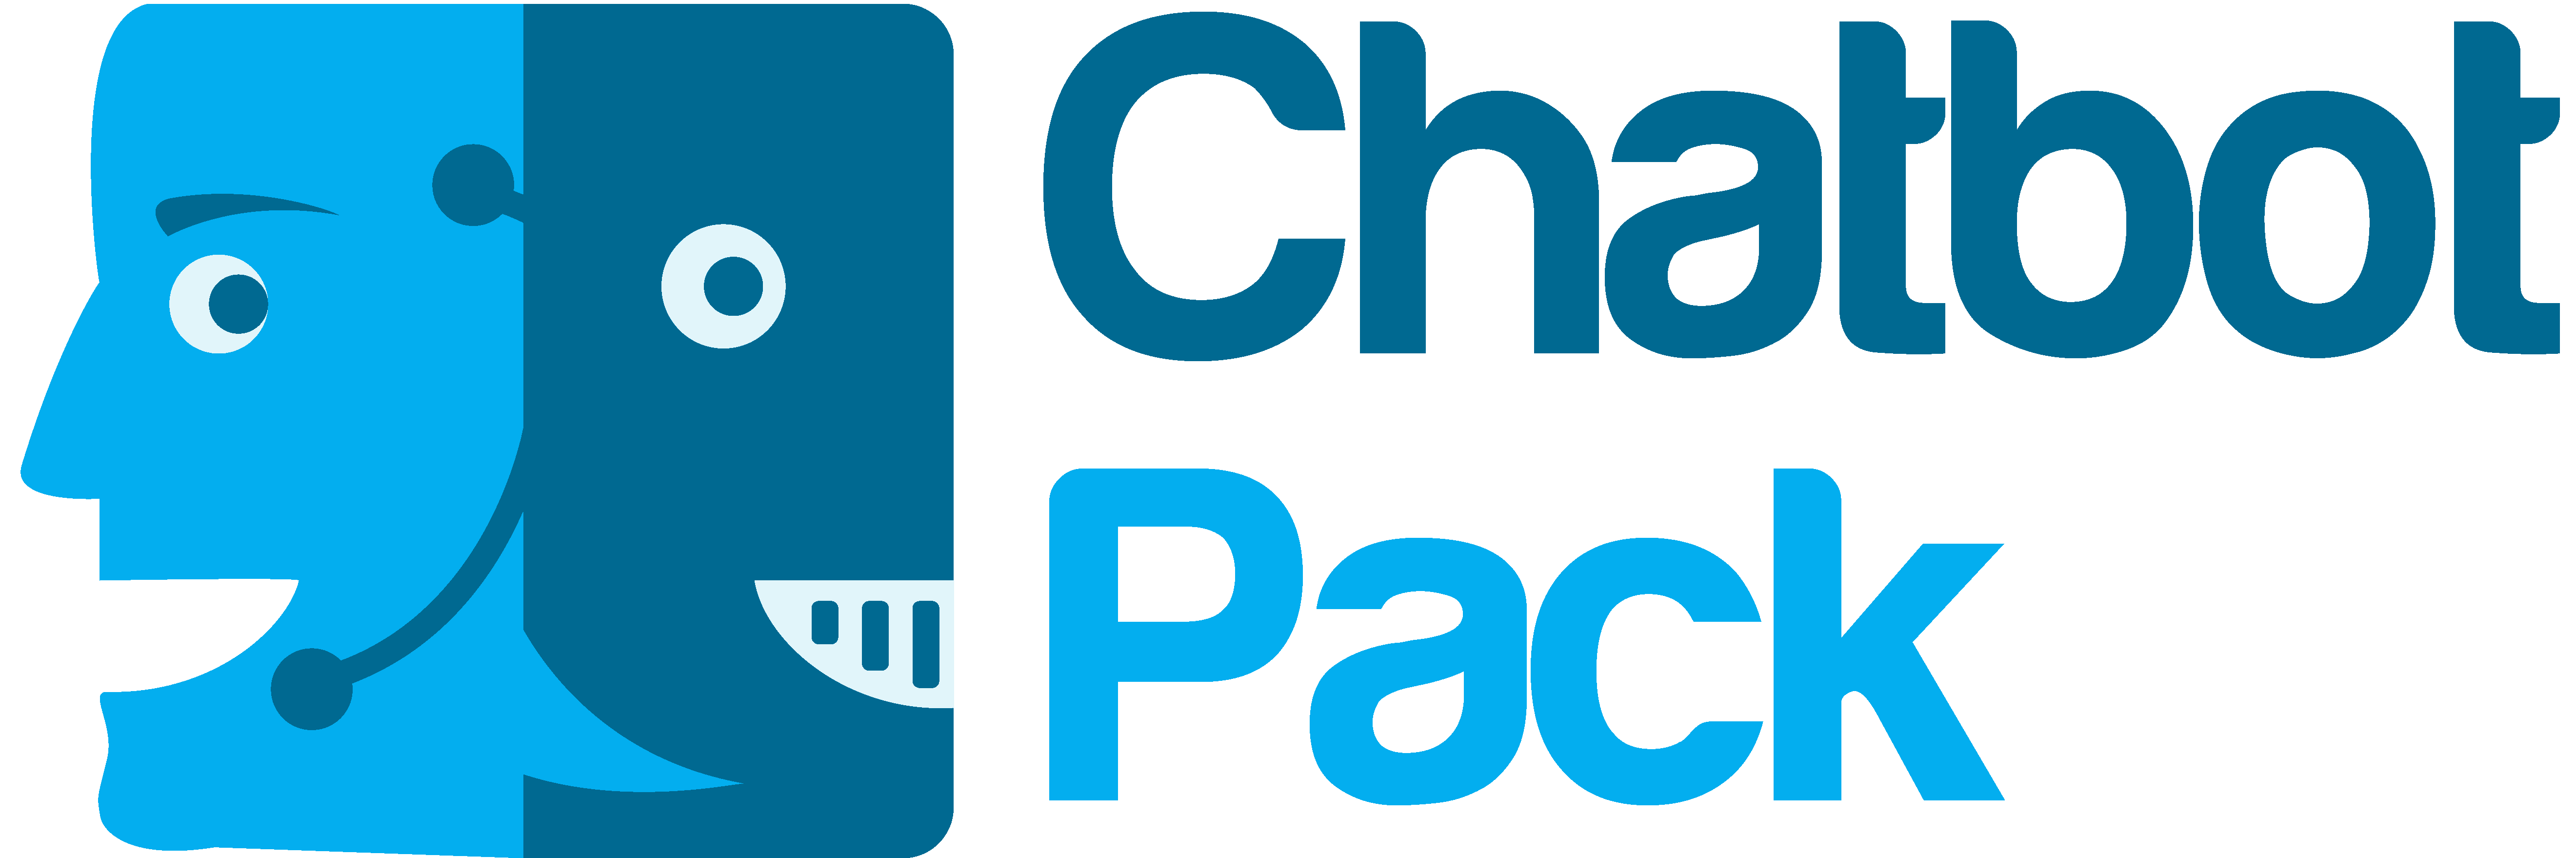 Chatbot Pack